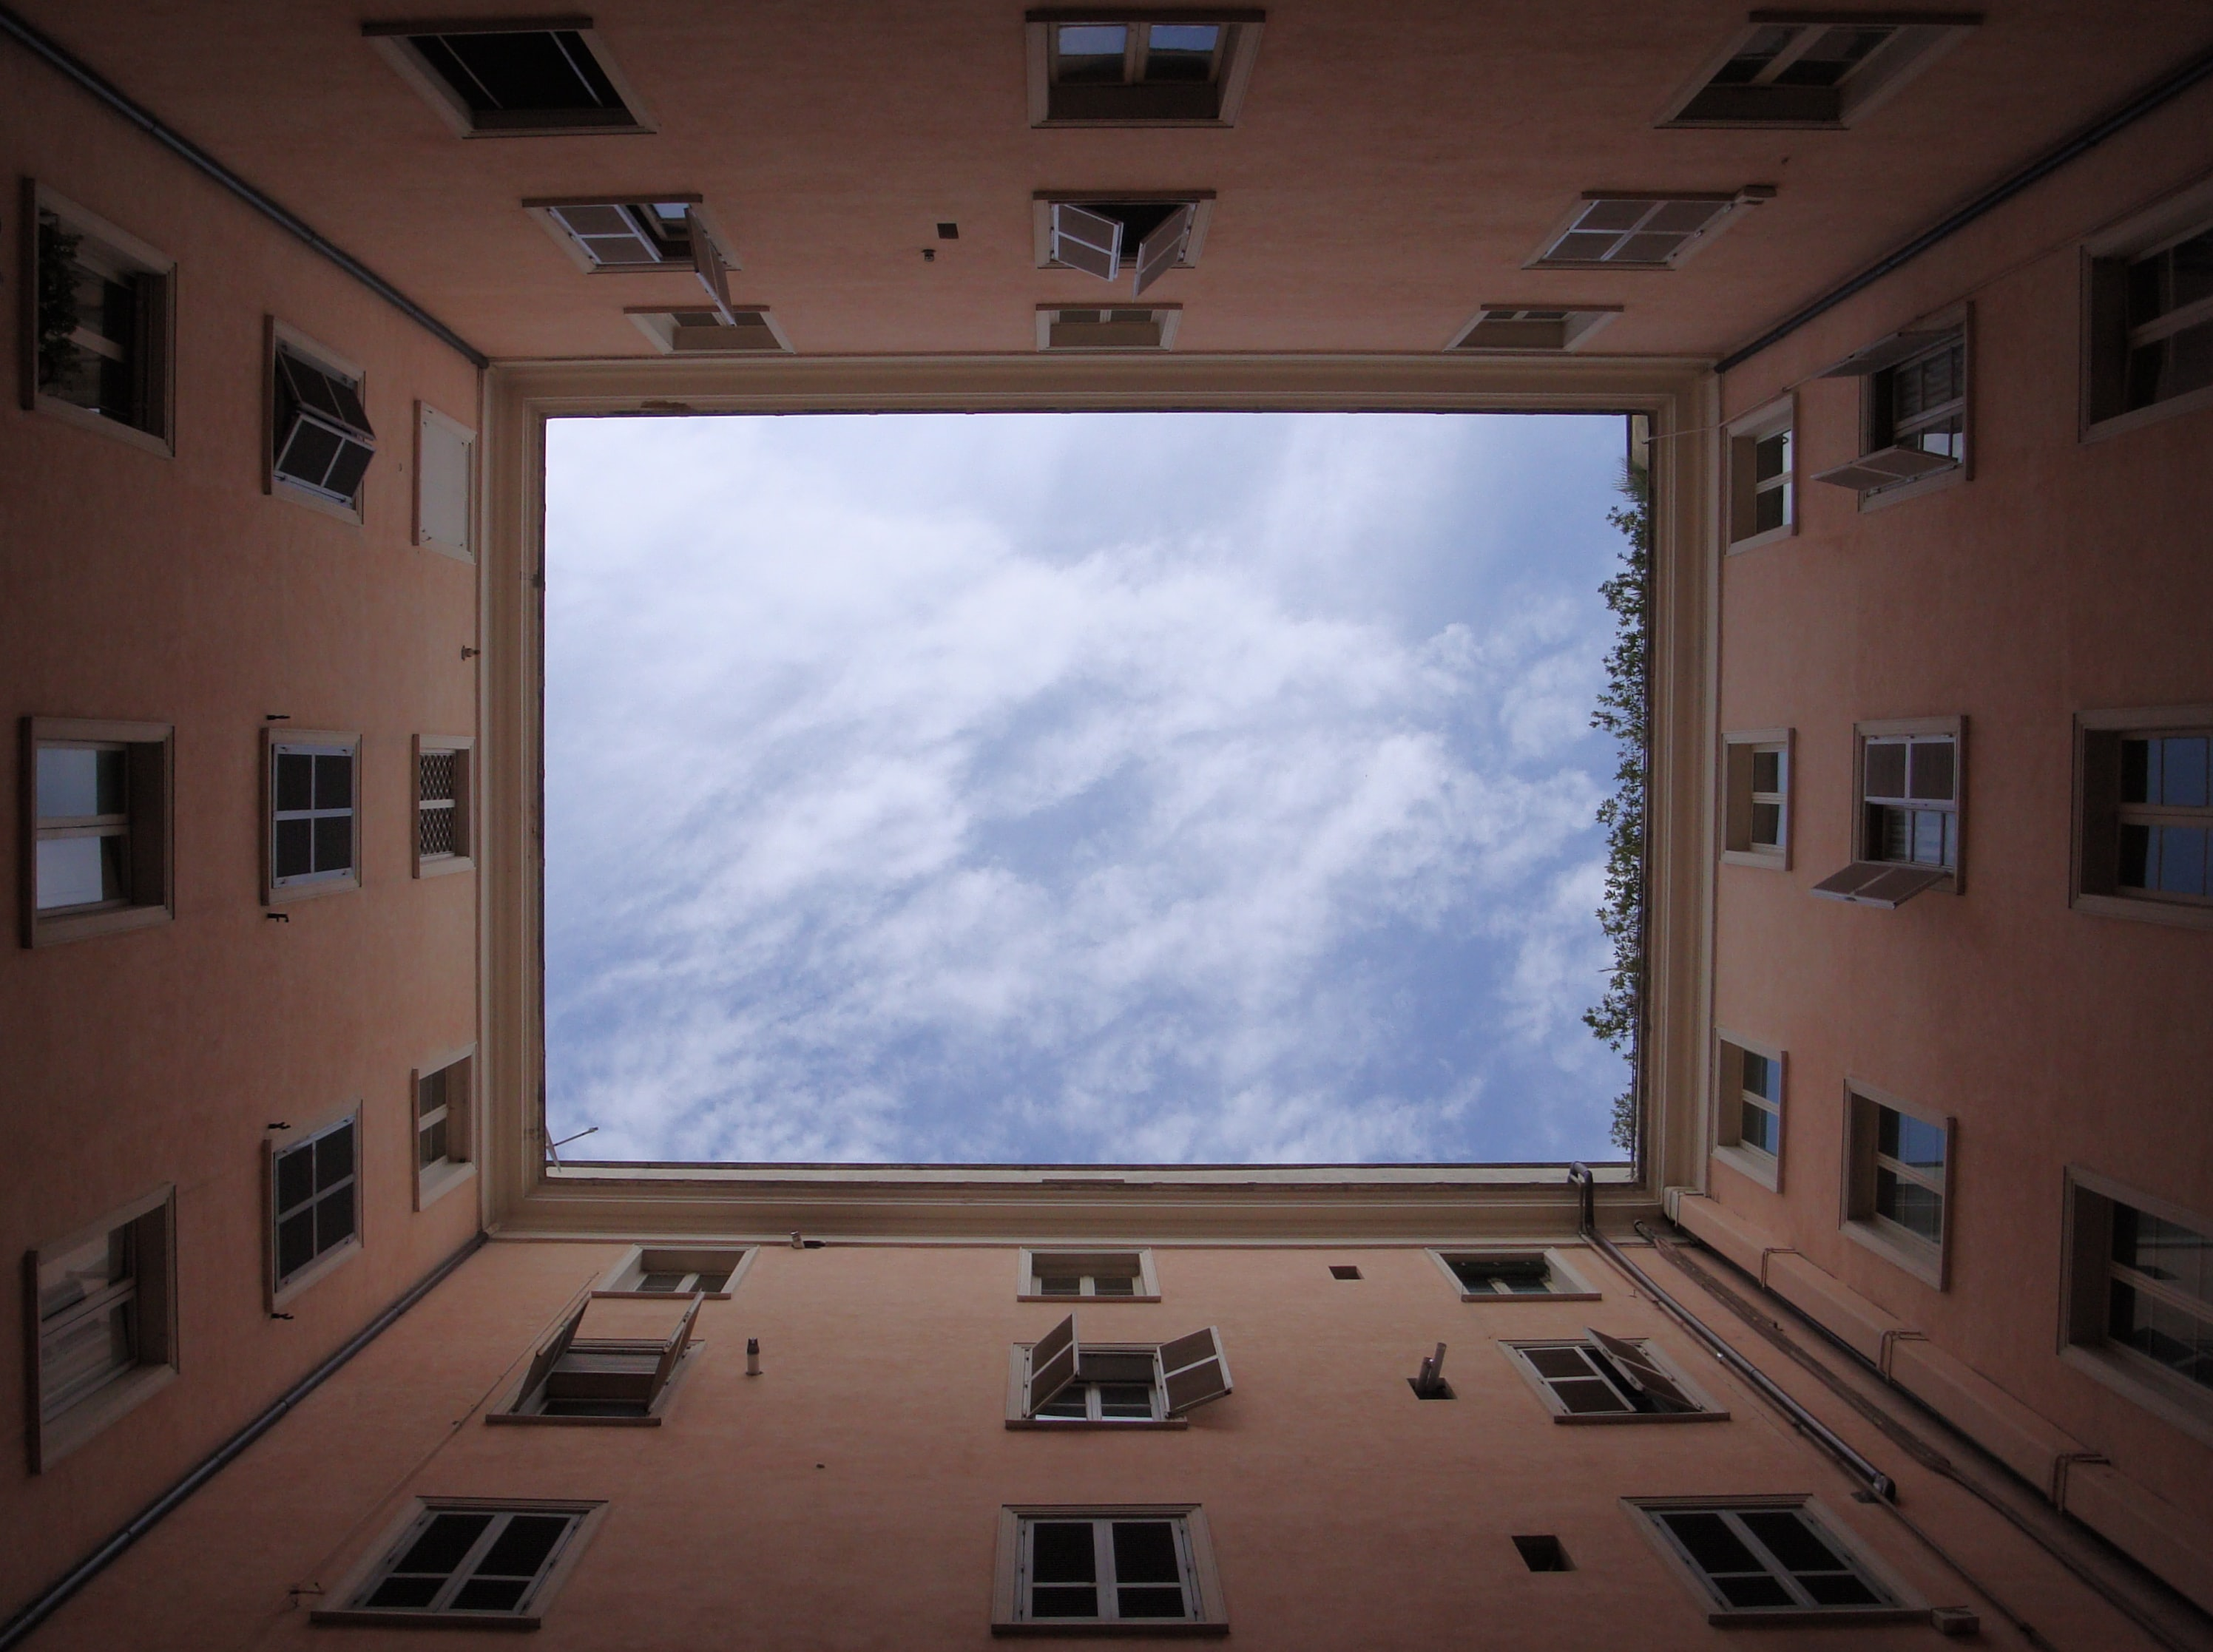 Scattered clouds in the sky framed by the well of an apartment building in Rome